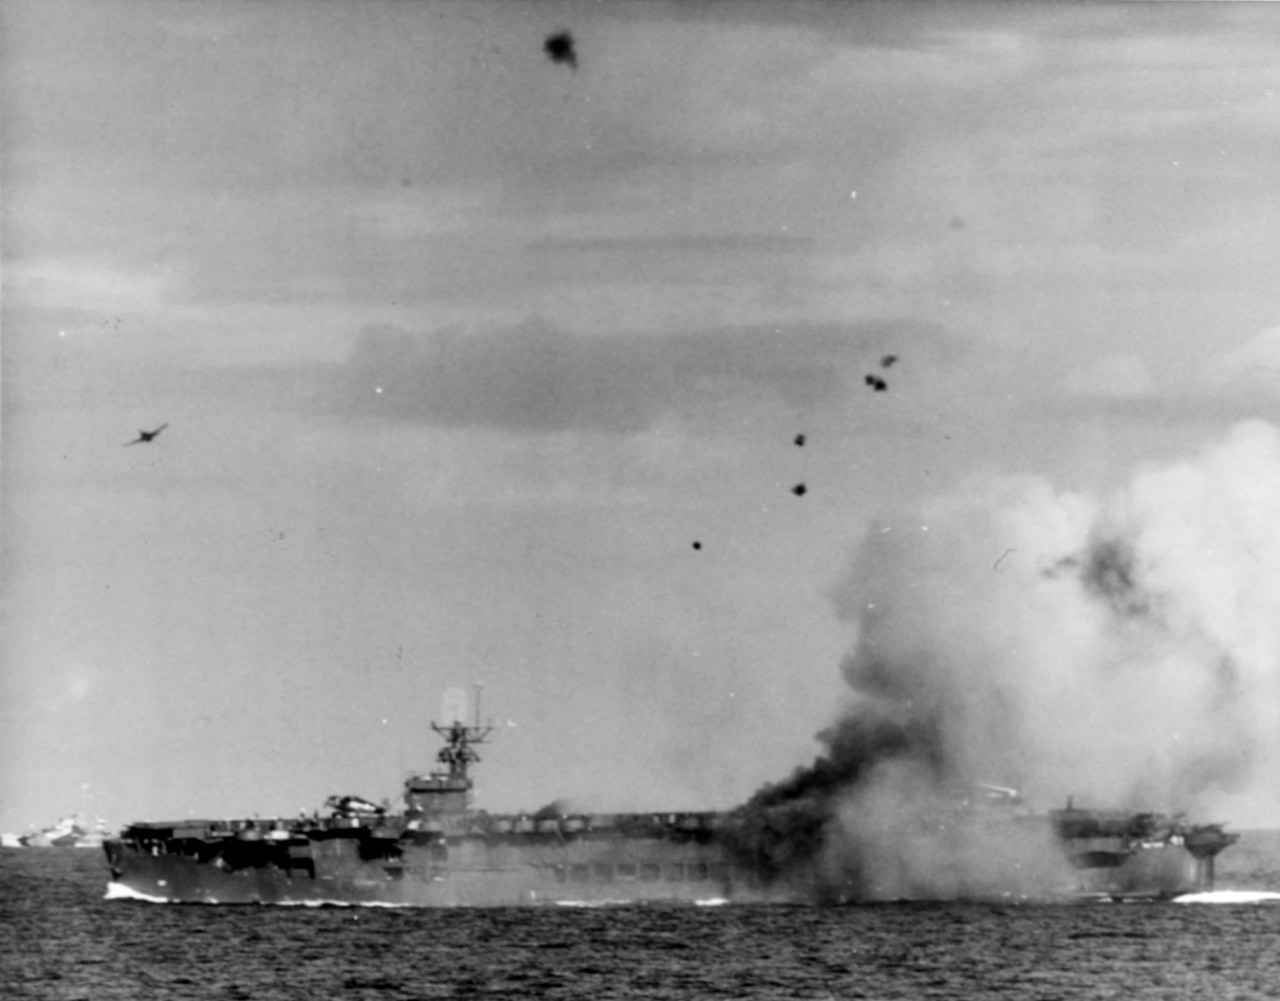 F6F completing pullout after chasing Zeke which crashed into USS Suwannee (CVE-27), 25 October 1944. Taken by USS Petrof Bay (CVE-80) Air Department.